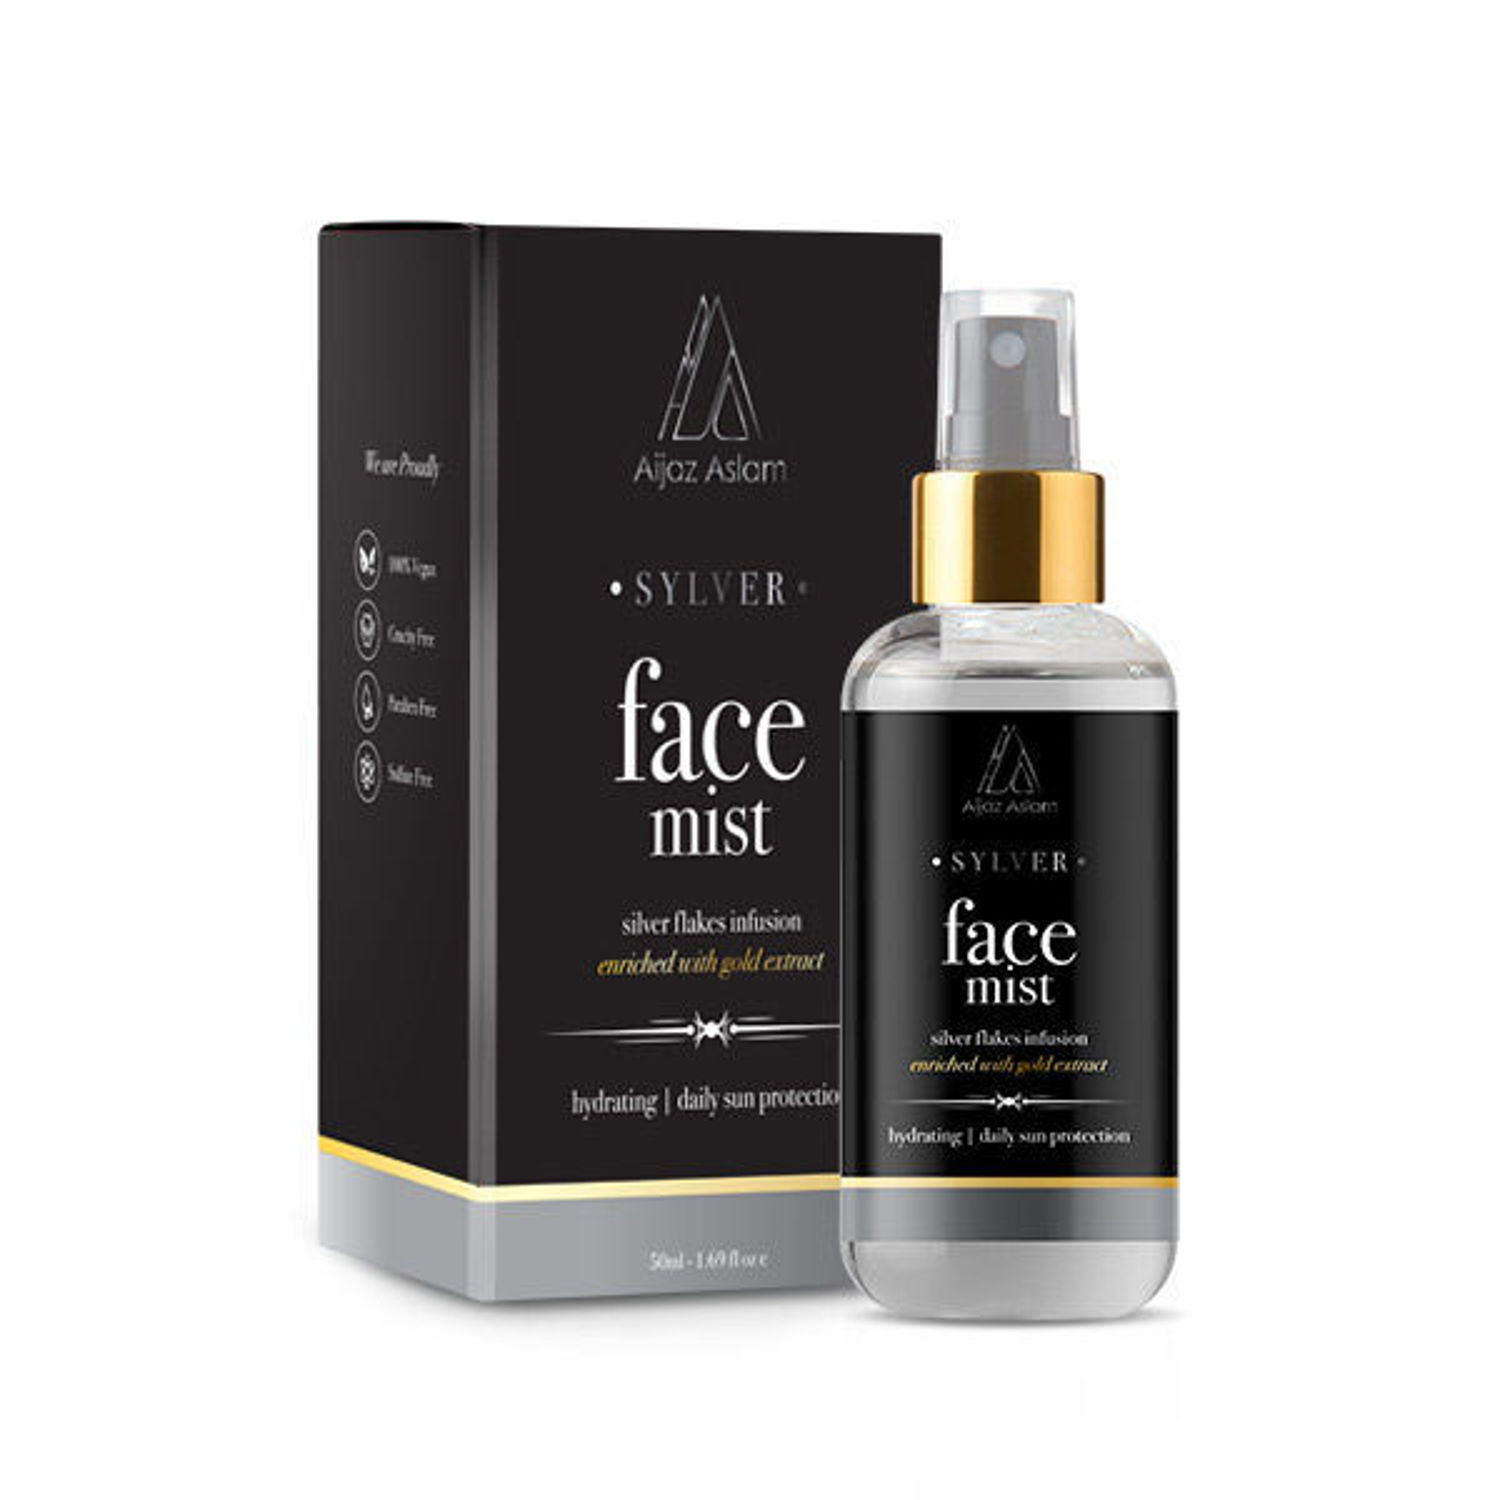 Picture of Sylver Face Mist  hydrating | daily sun protection (Aijaz Aslam)